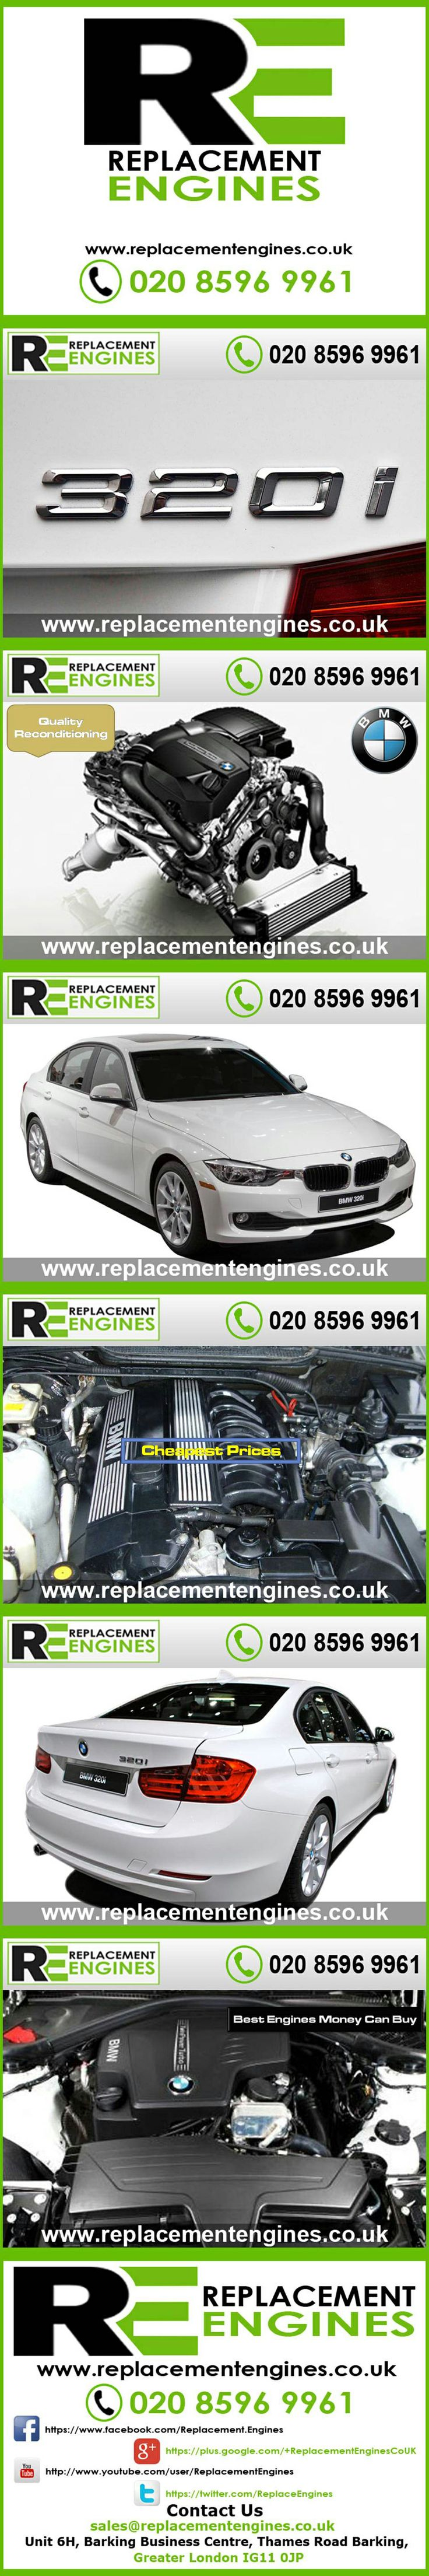 BMW 320i engines for sale at the cheapest prices, we have low mileage used & reconditioned engines in stock now, ready to be delivered to anywhere in the UK or overseas, visit Replacement Engines website here.